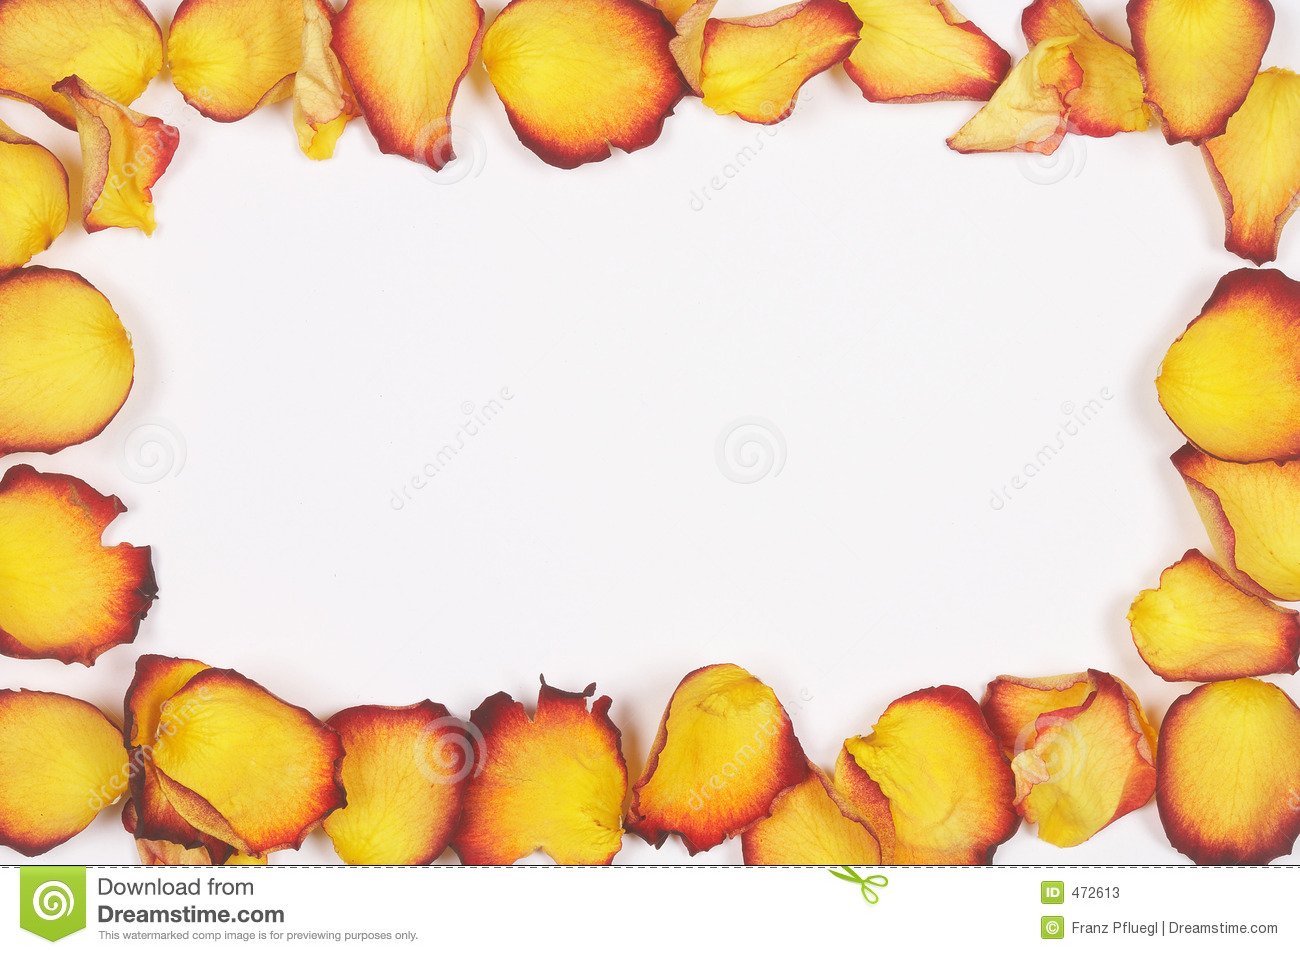 Yellow-red rose petals - gelb-rote Rosenbl䴴er